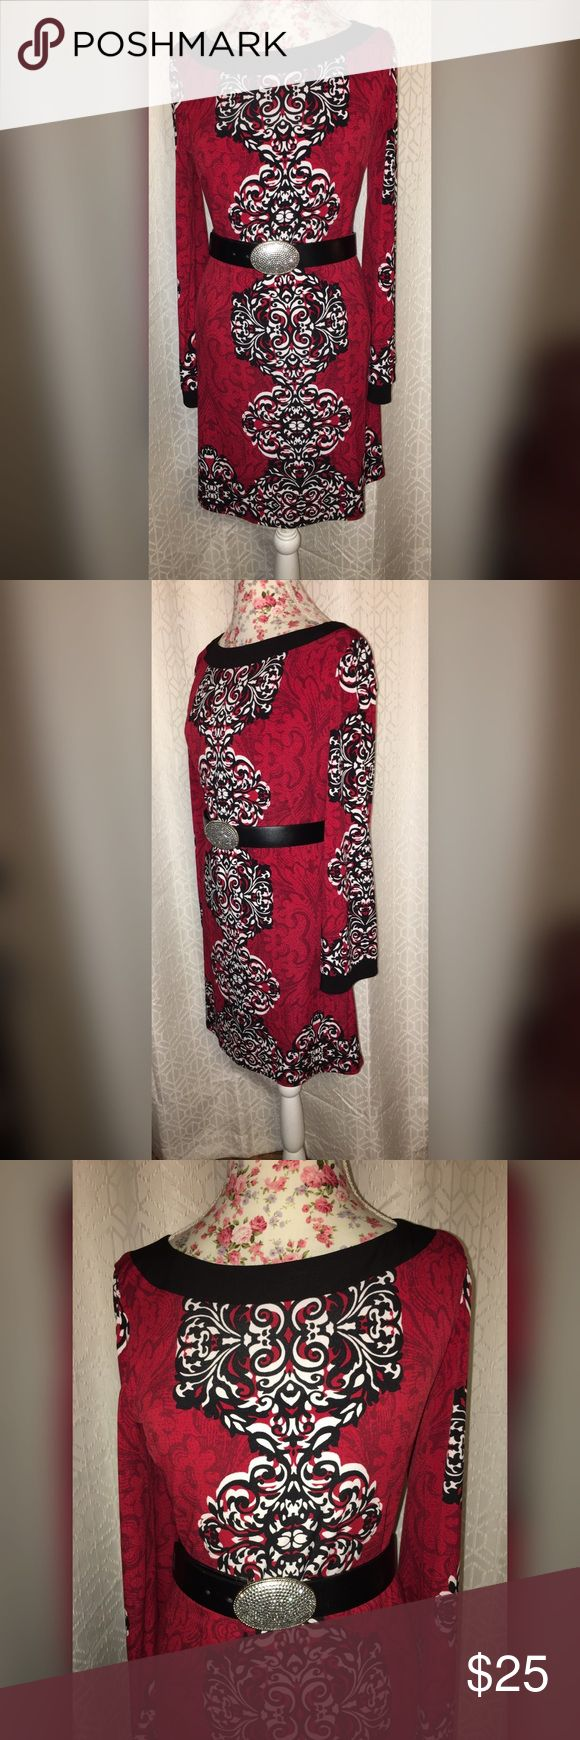 NWOT LAUNDRY SHELLI SEGAL BELL SLEEVES DRESS SZ SM This beautiful Shelley said doll dress has a beautiful print going down the center and has bell sleeves which is perfect for the new BoHo look this is a true gem and has never been worn! Laundry by Shelli Segal Dresses Midi